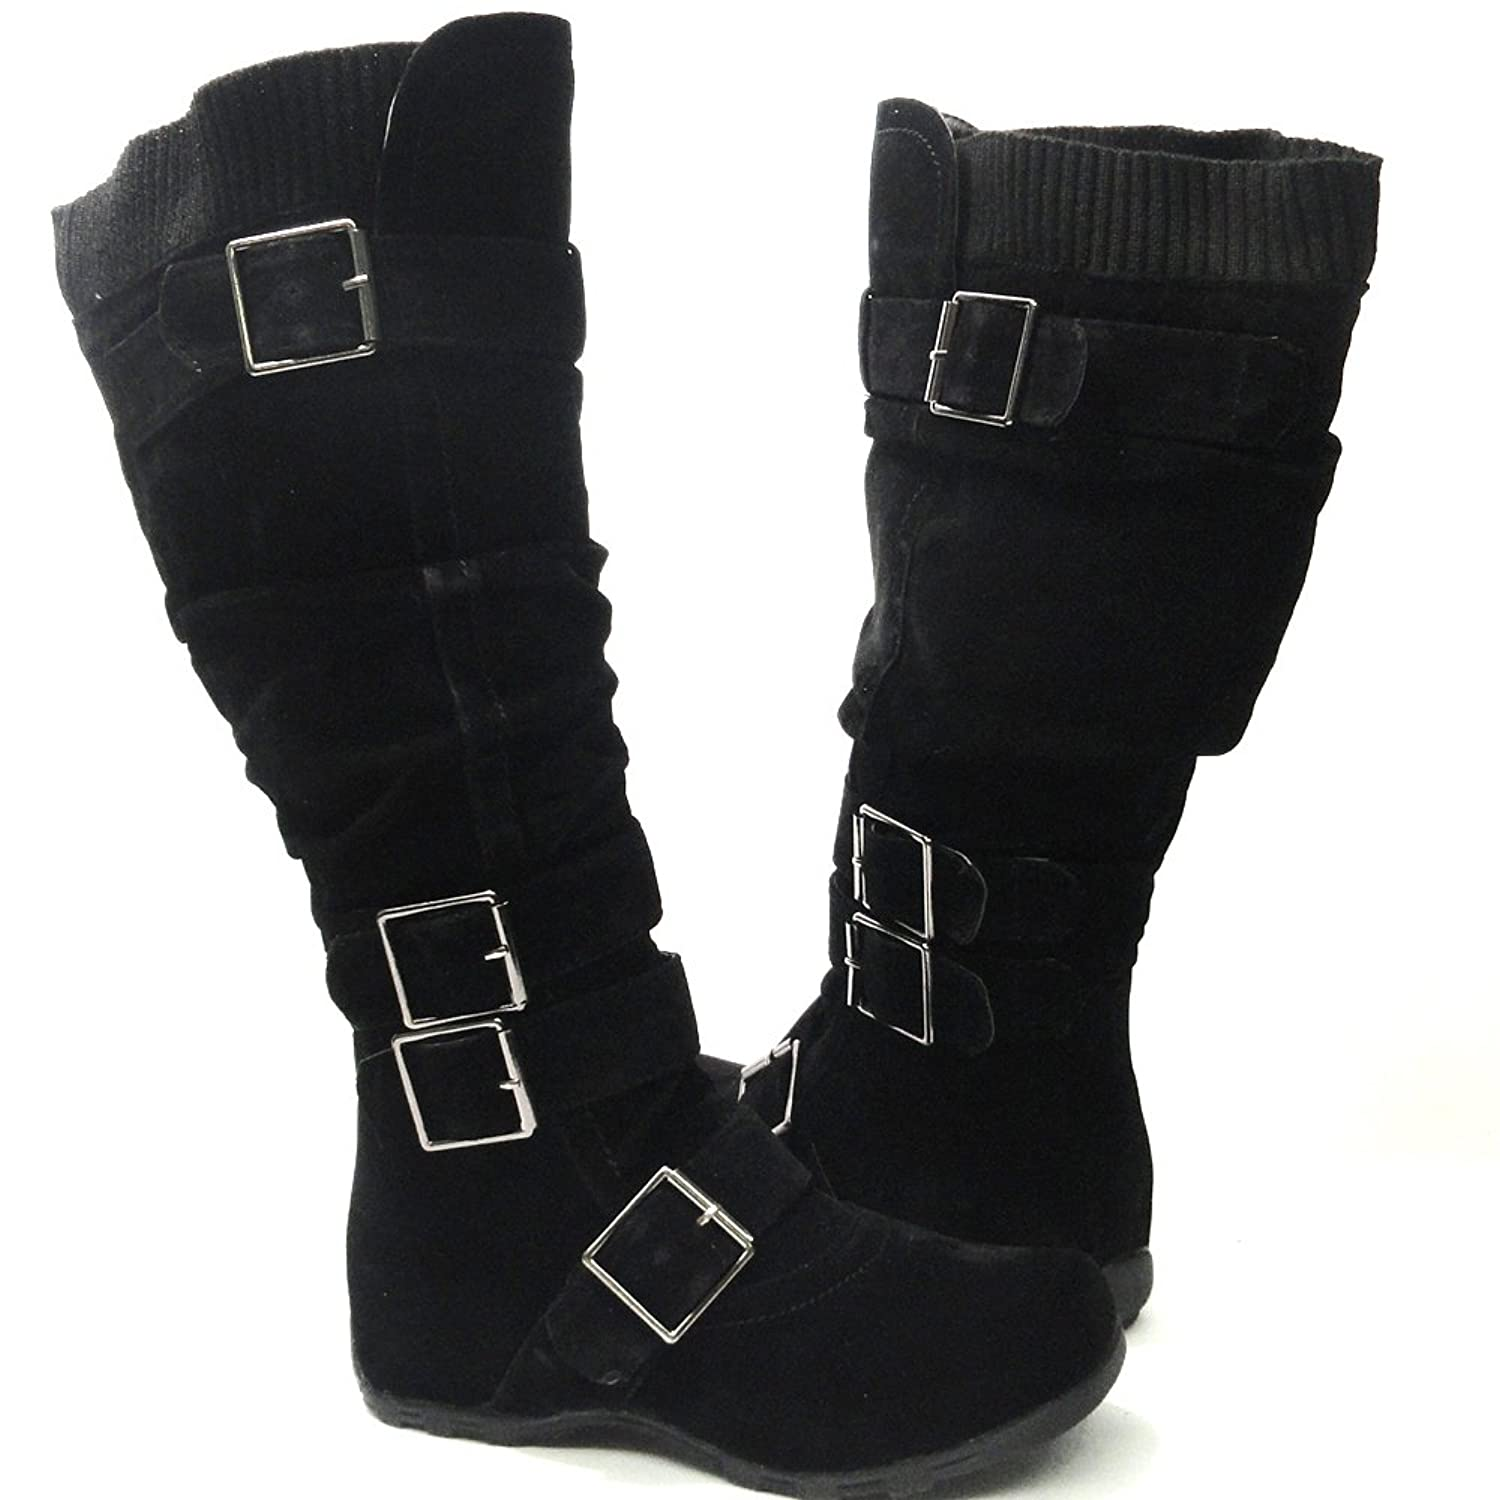 Womens knee high boots with buckles